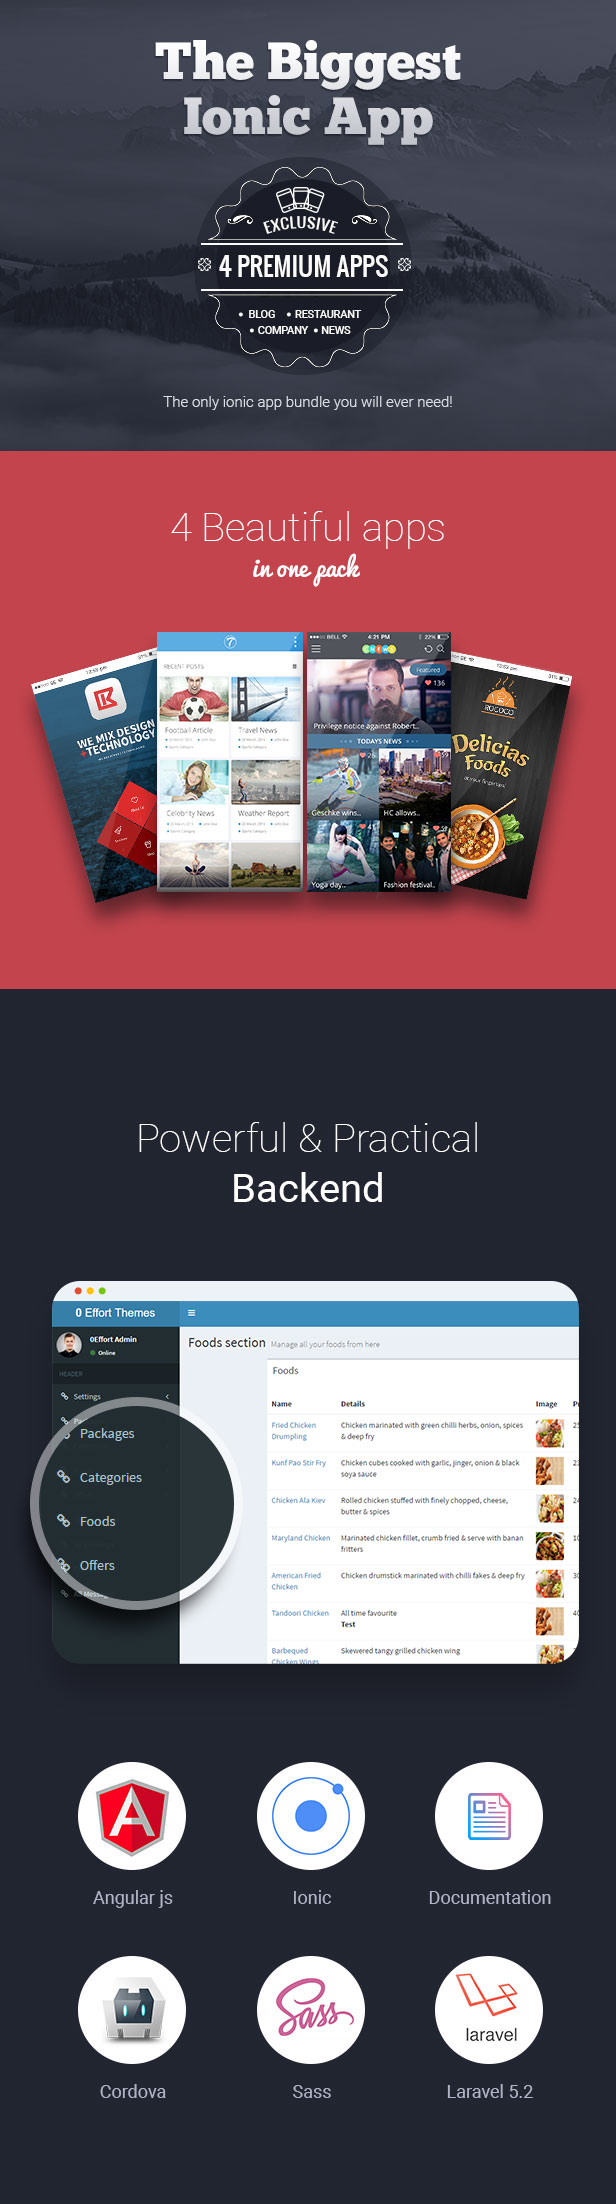 X App - Hand-crafted multiple ionic apps with Laravel backend - 2